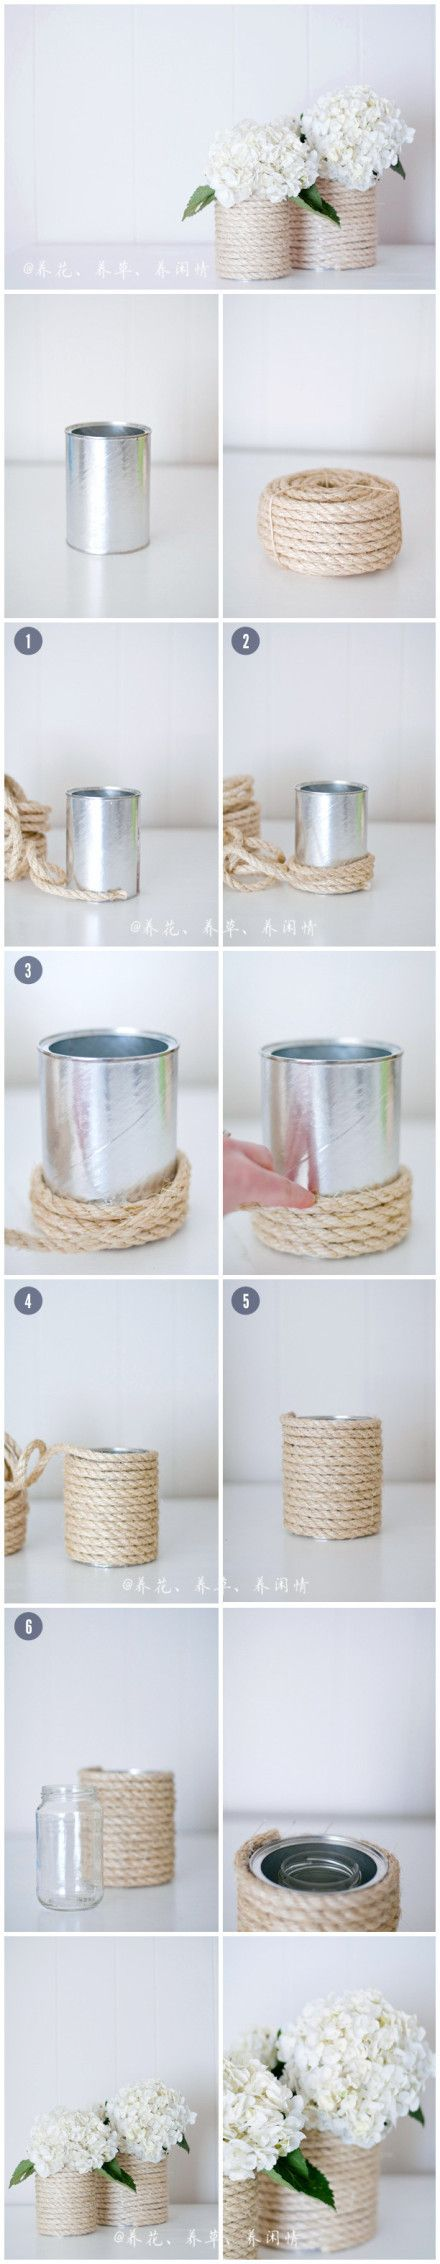 Cans & jars covered in rope - table decor--wonder if you can get the same effect covering glass vases